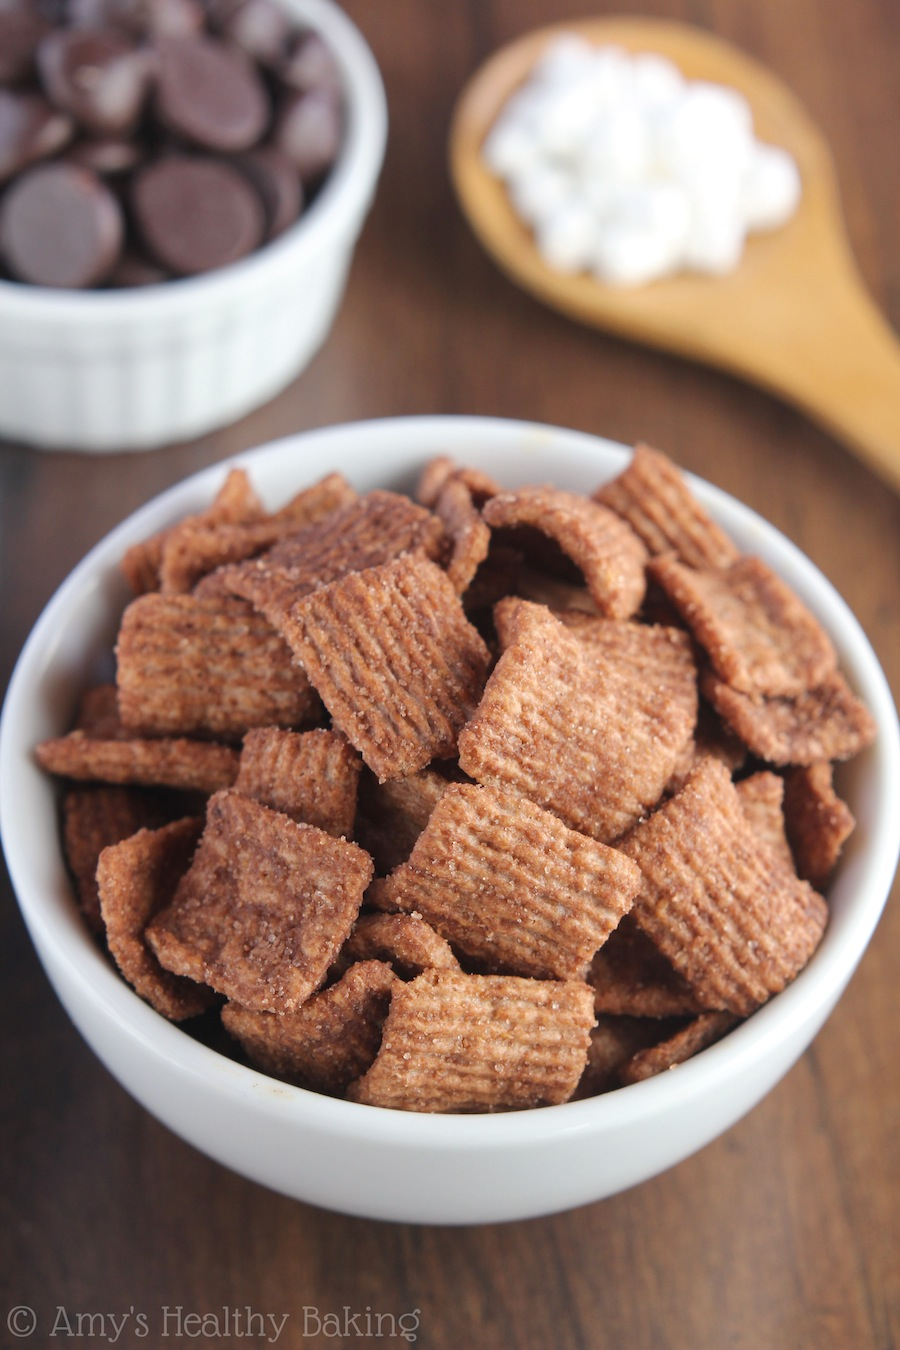 Hot Chocolate Cereal Treats | Amy's Healthy Baking